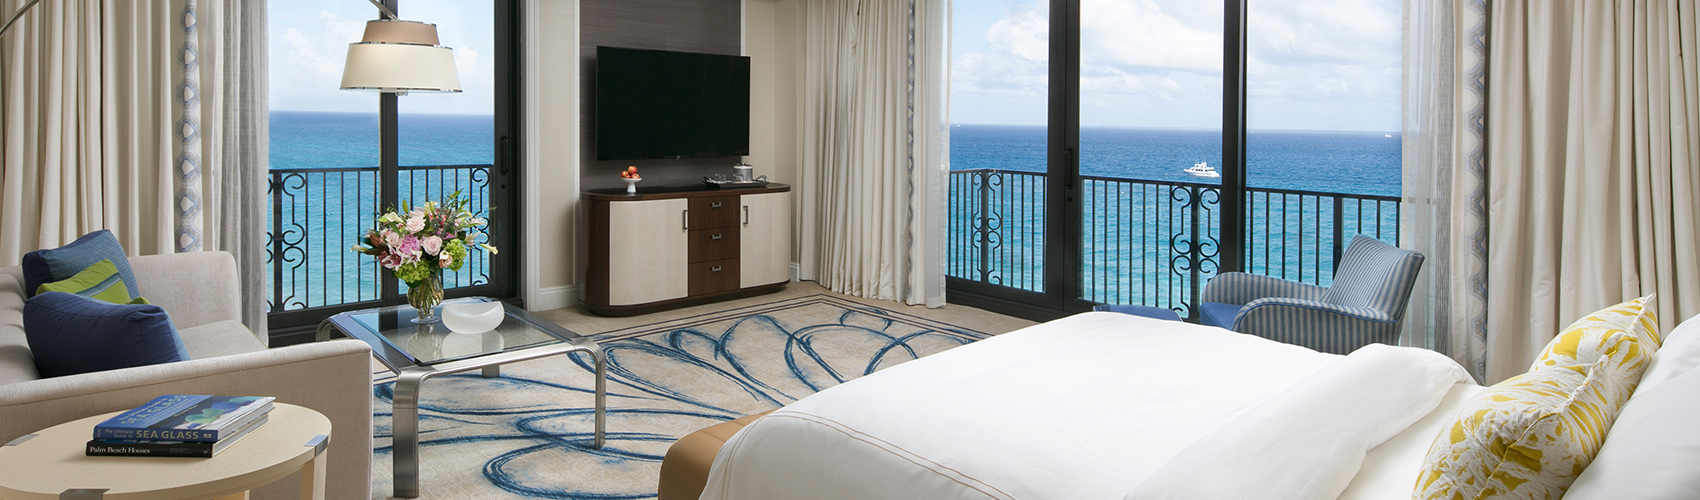 Atlantic Junior Suite with Oceanfront View Living Room